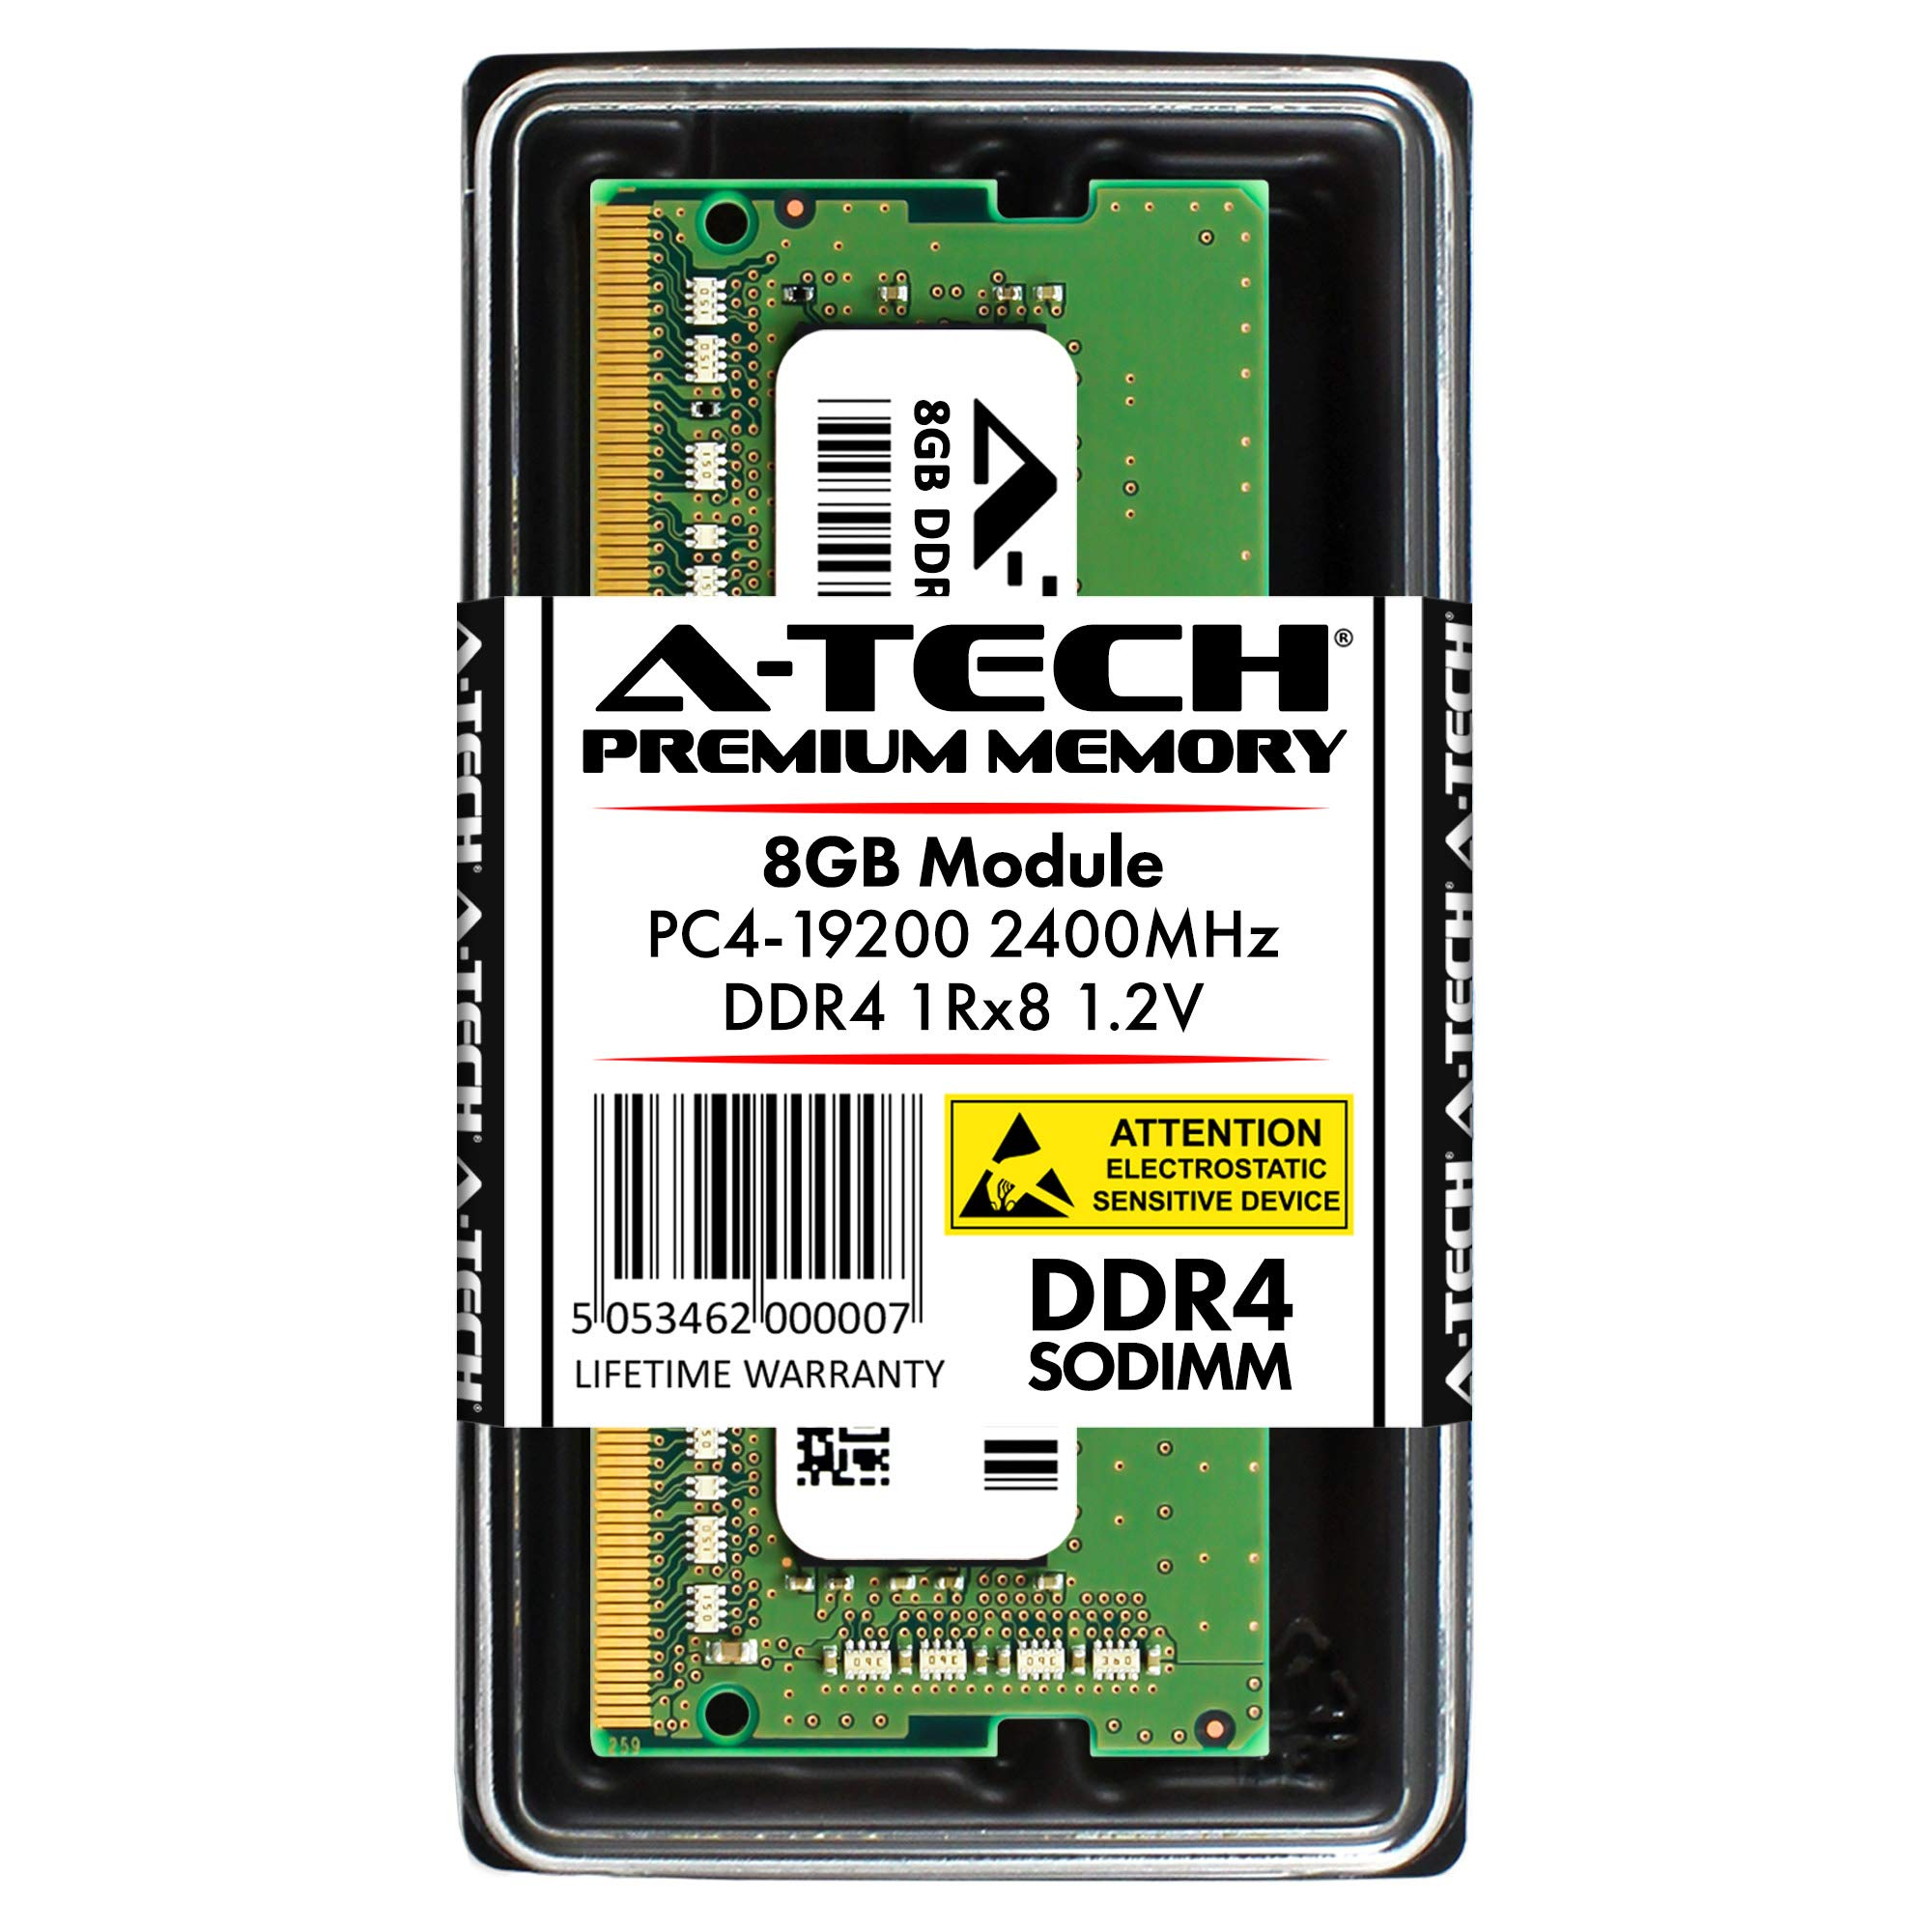 Memoria Ram 8GB A-Tech DDR4 2400MHz Modulo (1 x 8GB) PC4-19200 Non-ECC Unbuffered SODIMM 260-Pin 1Rx8 1.2V Single